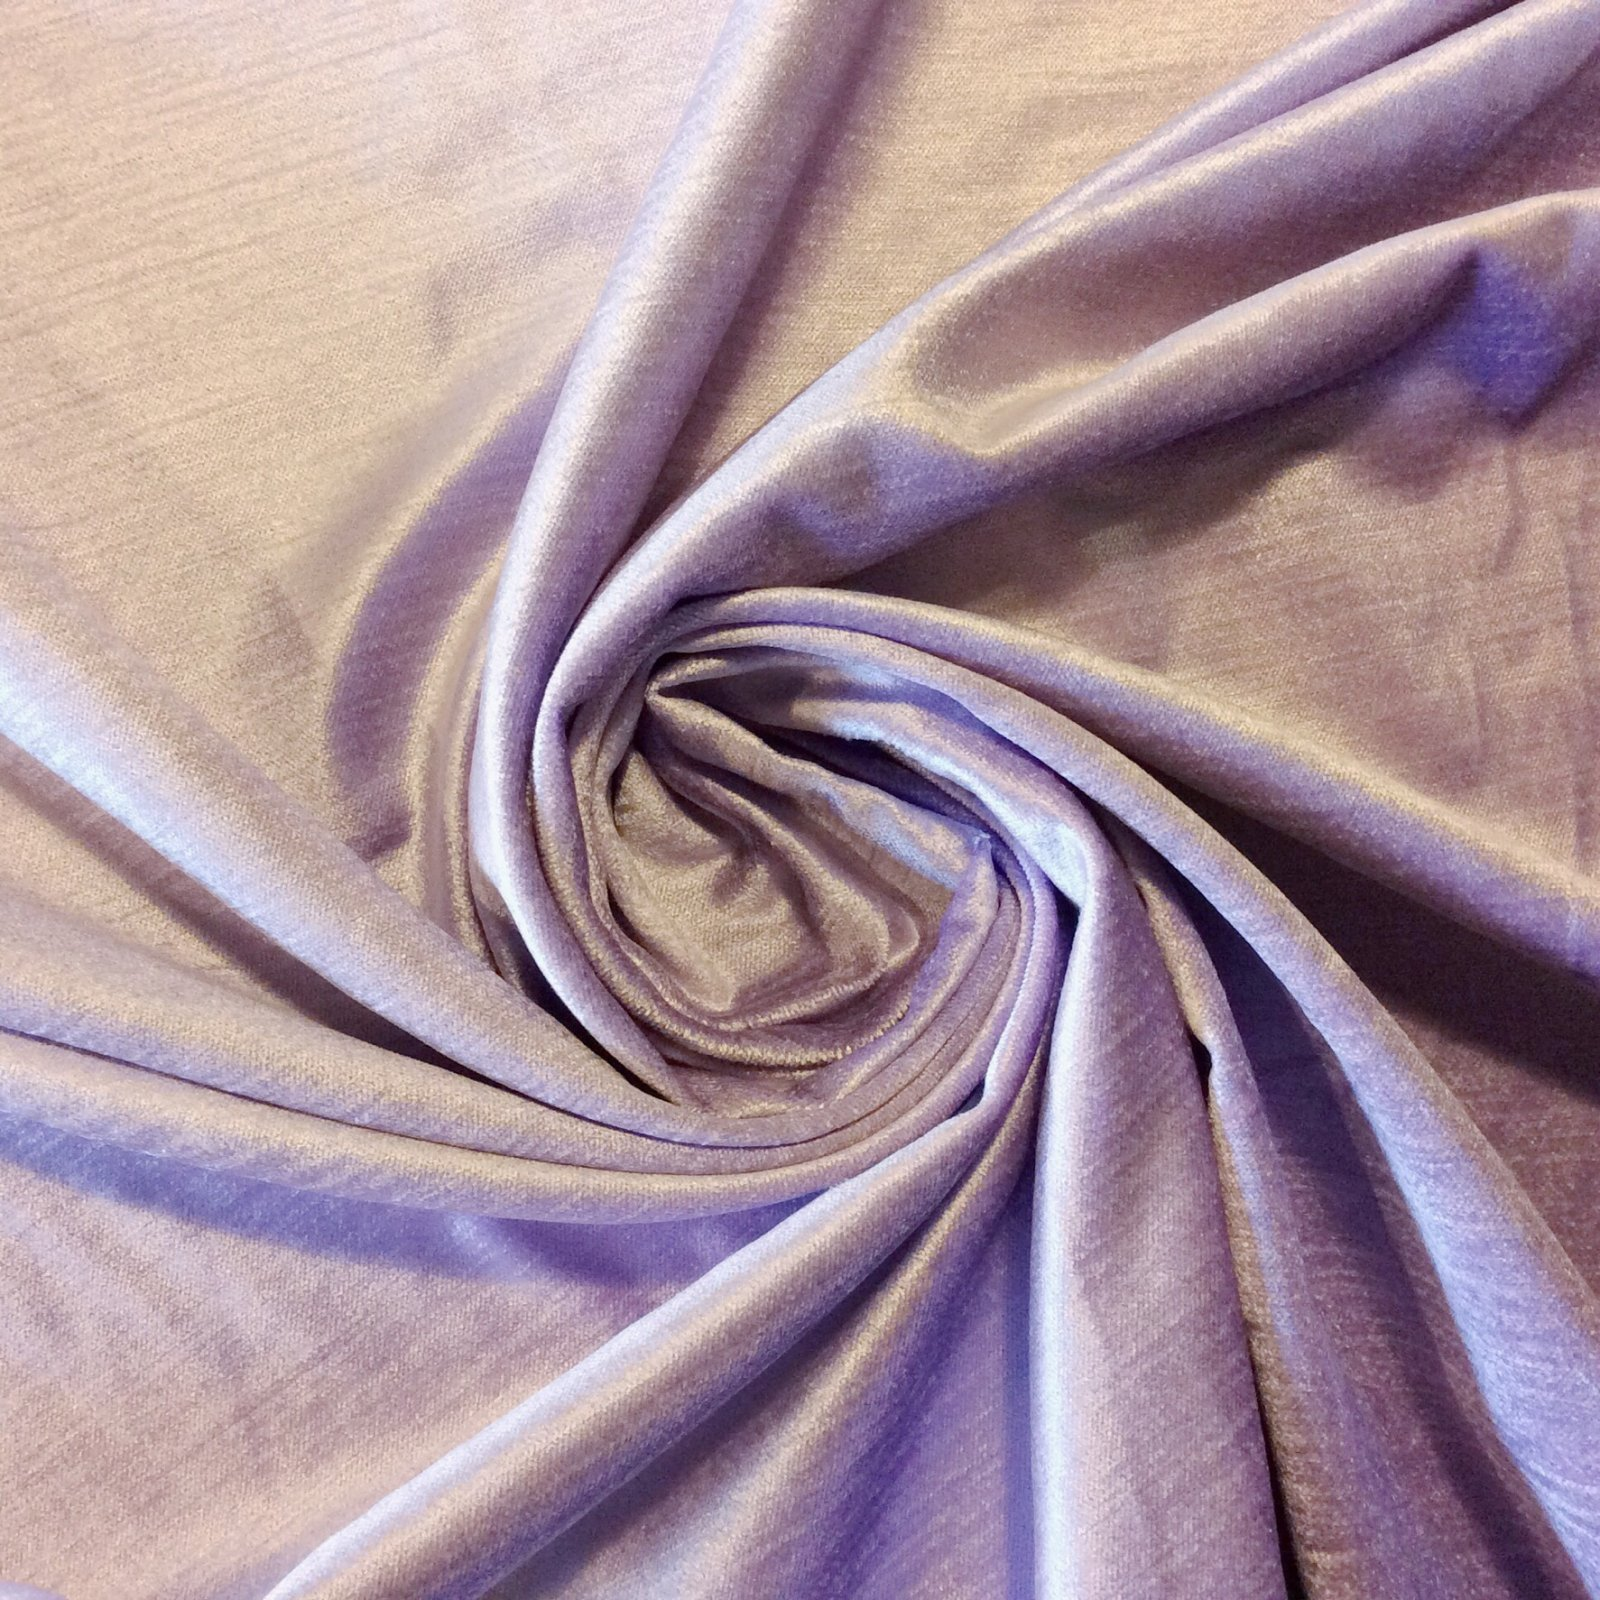 Rx005 Luxurious Solid Velvet Lavender By The Yard Upholstery Home